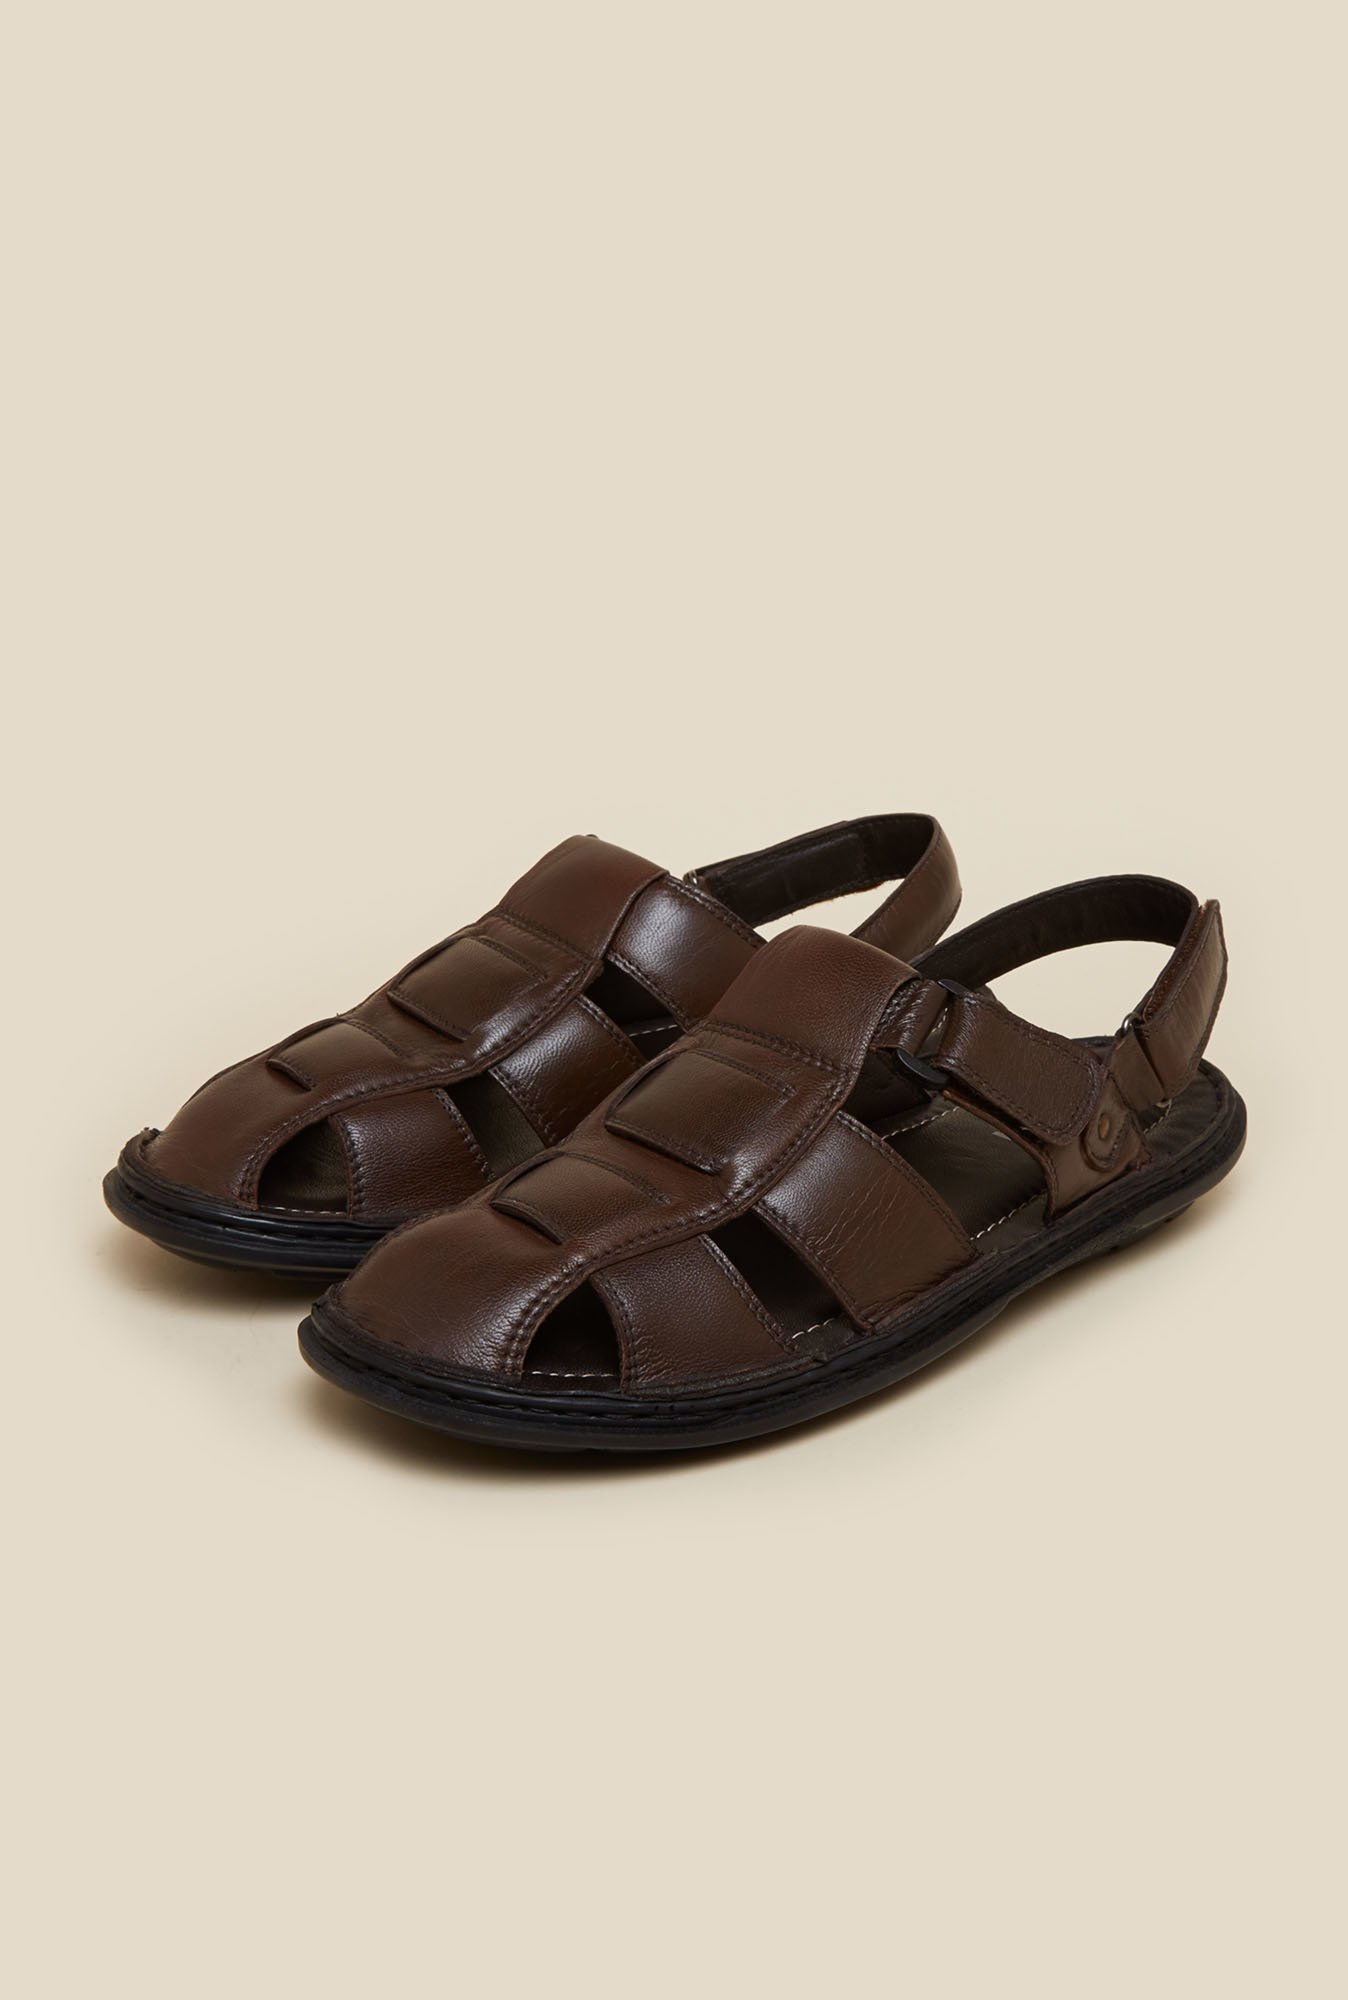 Mochi Brown Leather Fisherman Sandals